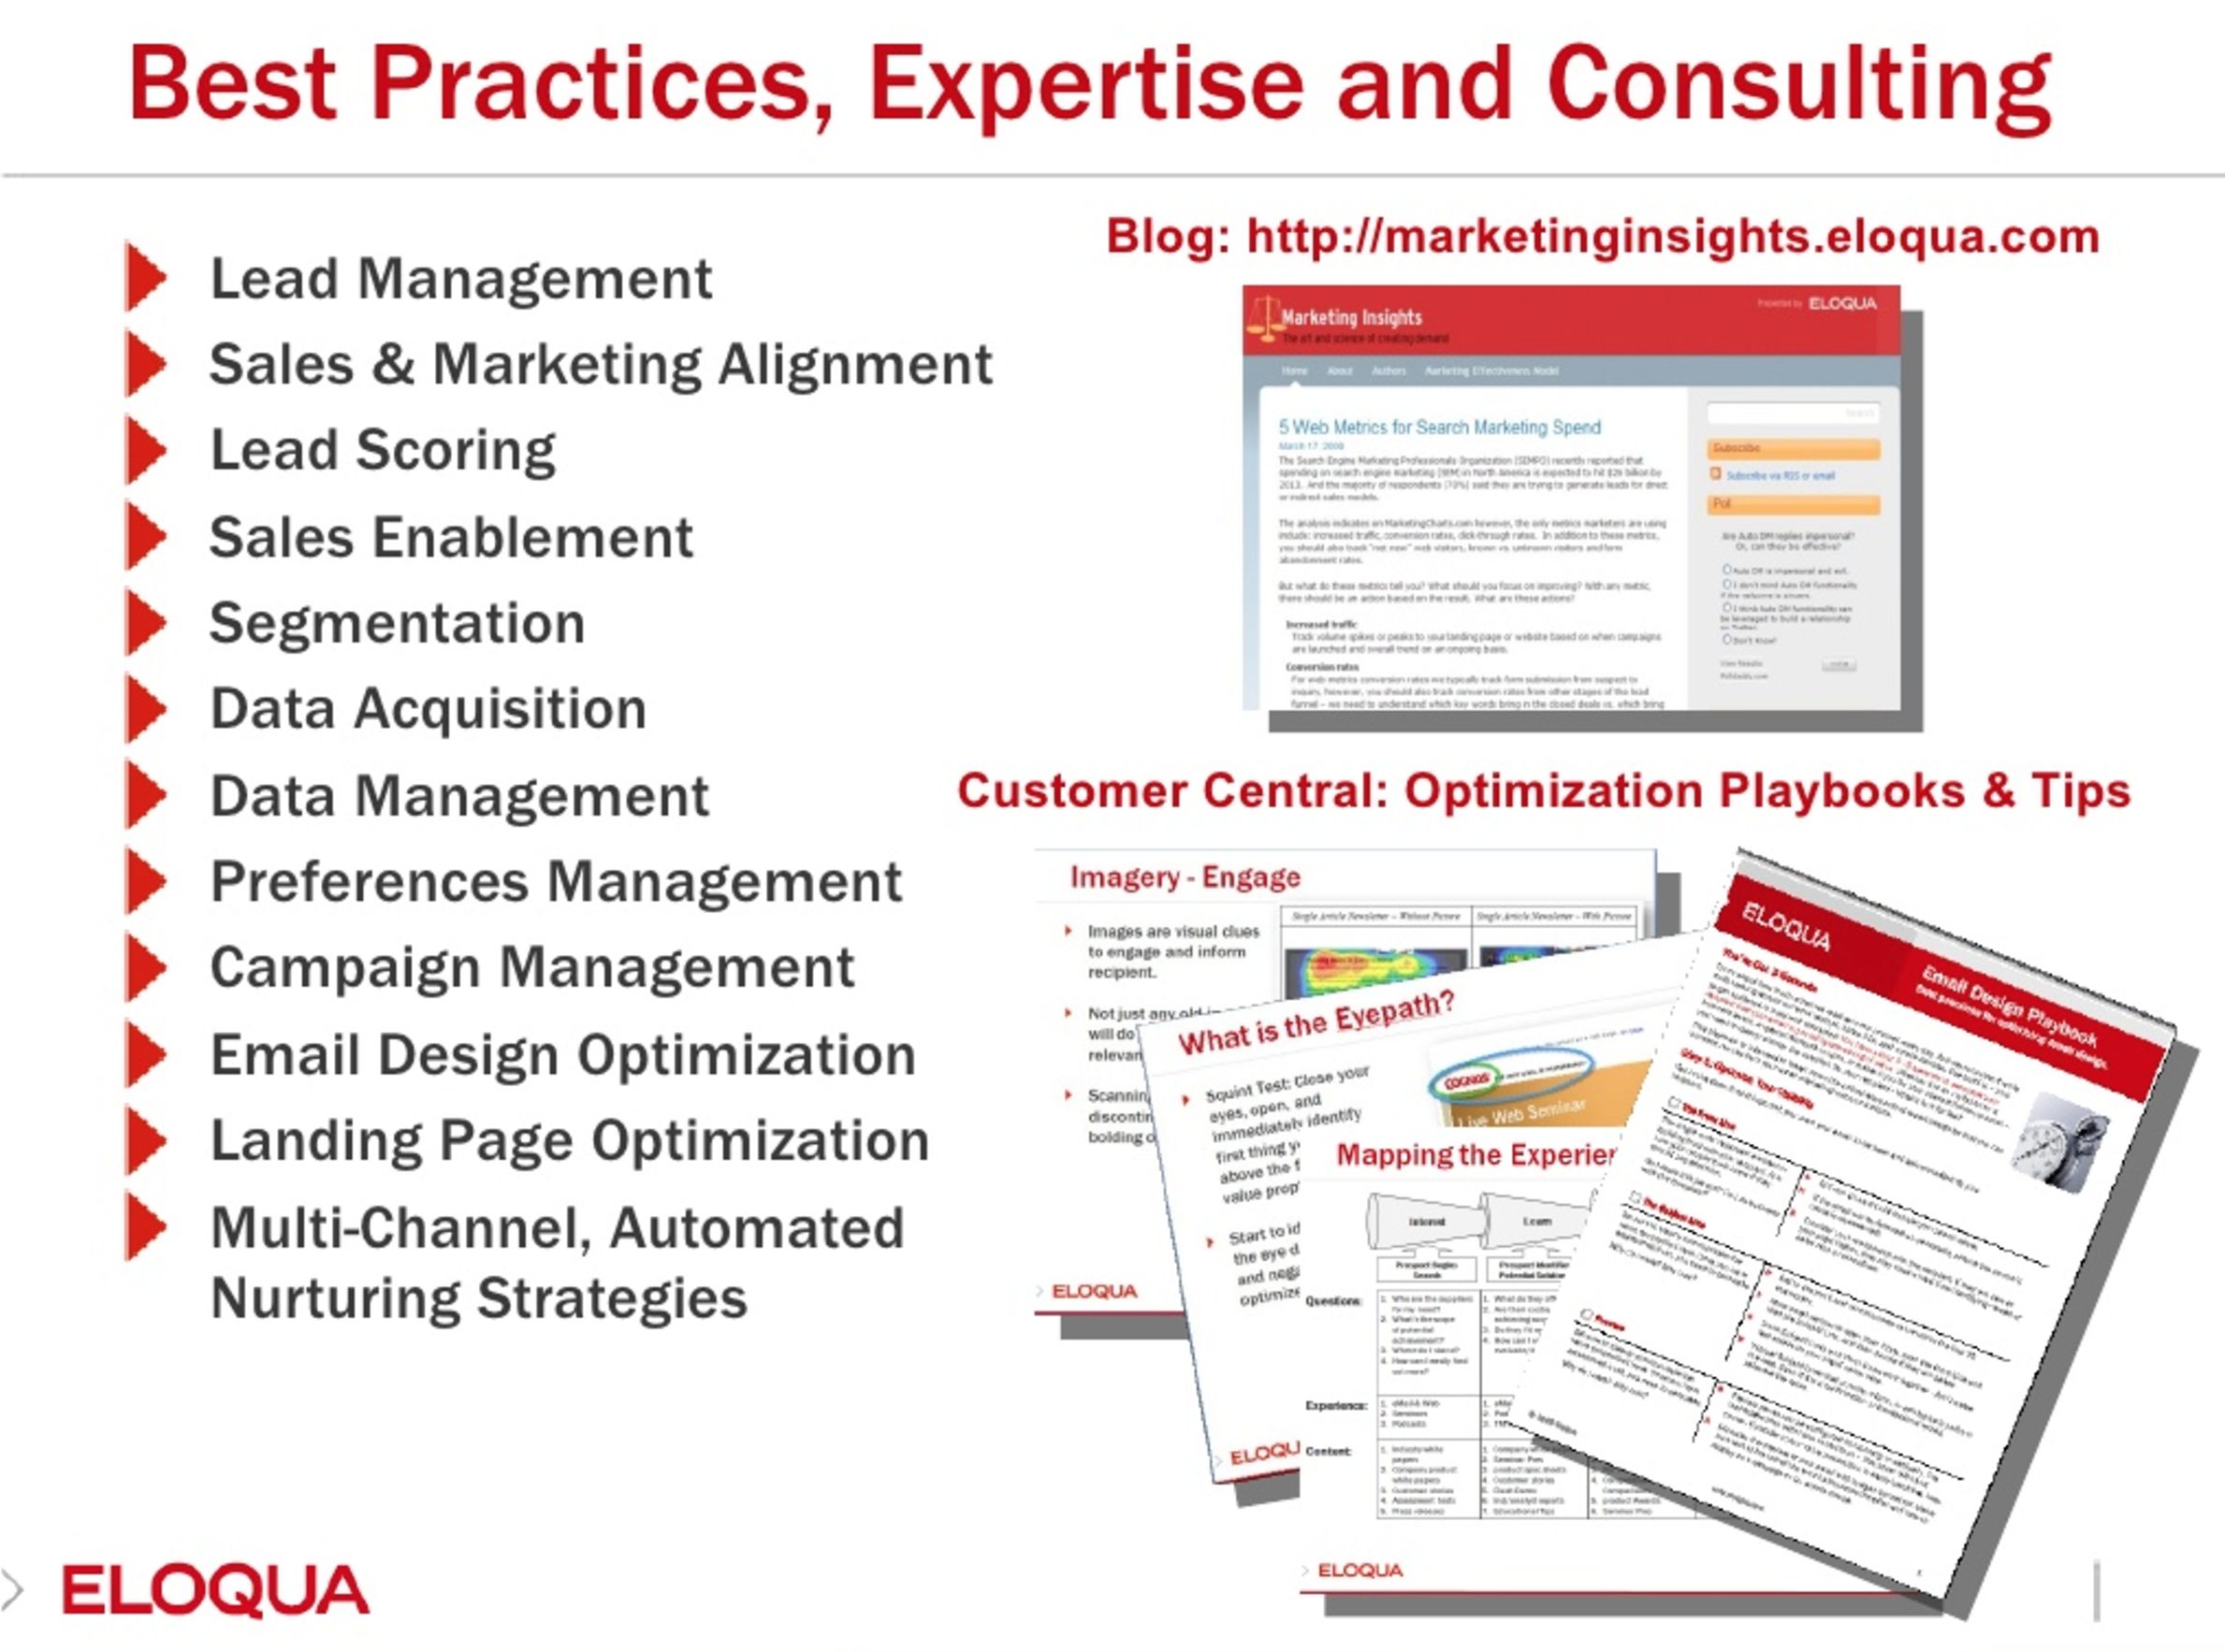 Presentation slide from Eloqua for enterprises